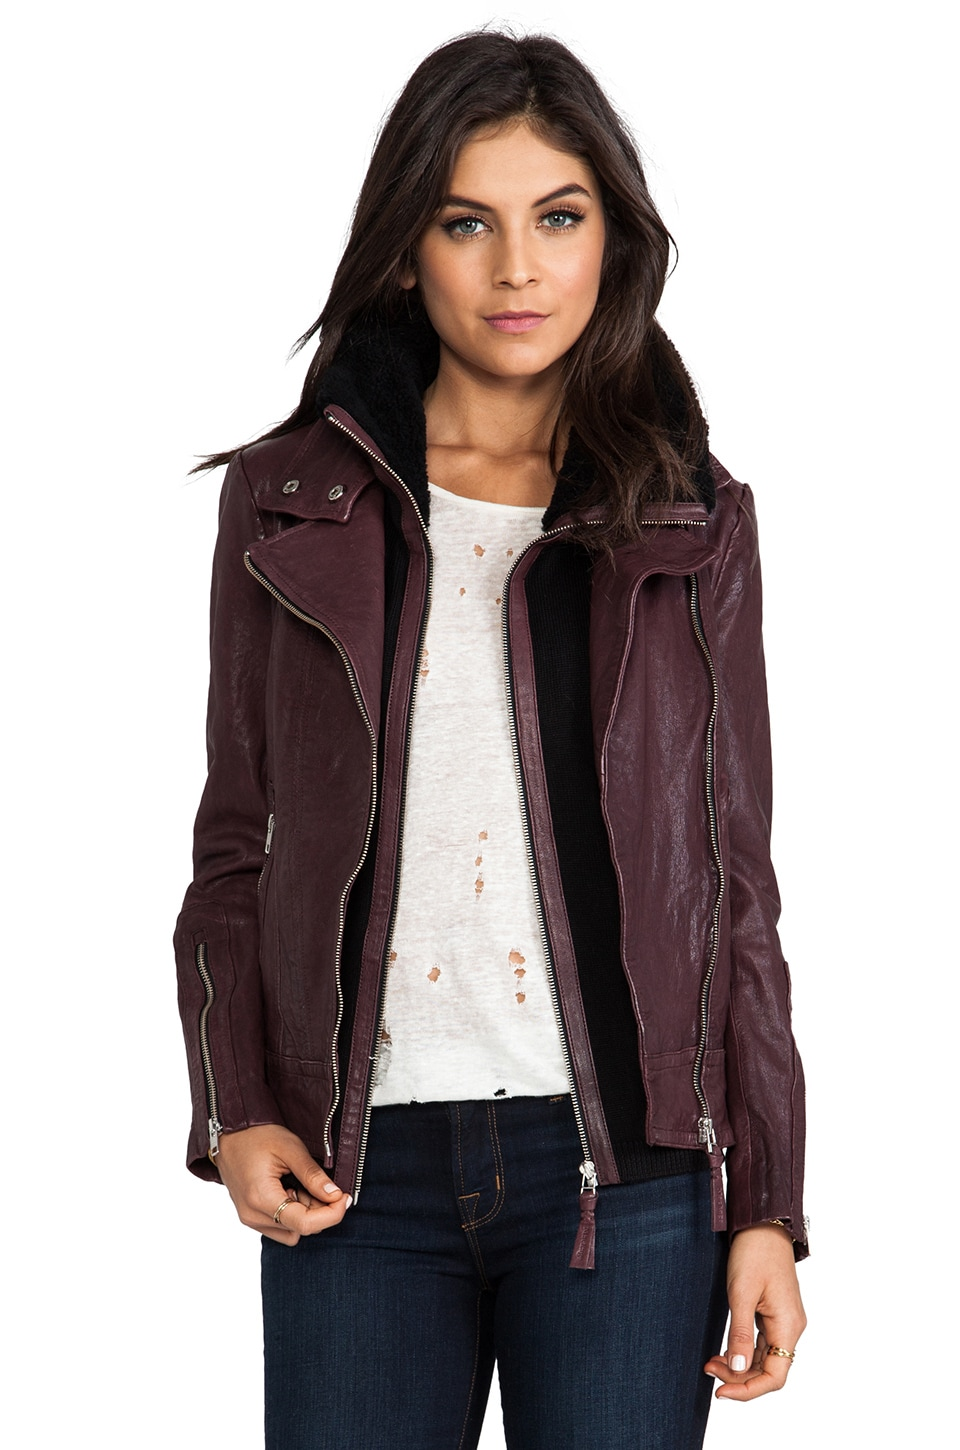 Mackage Veruca Distressed Leather Jacket in Merlot